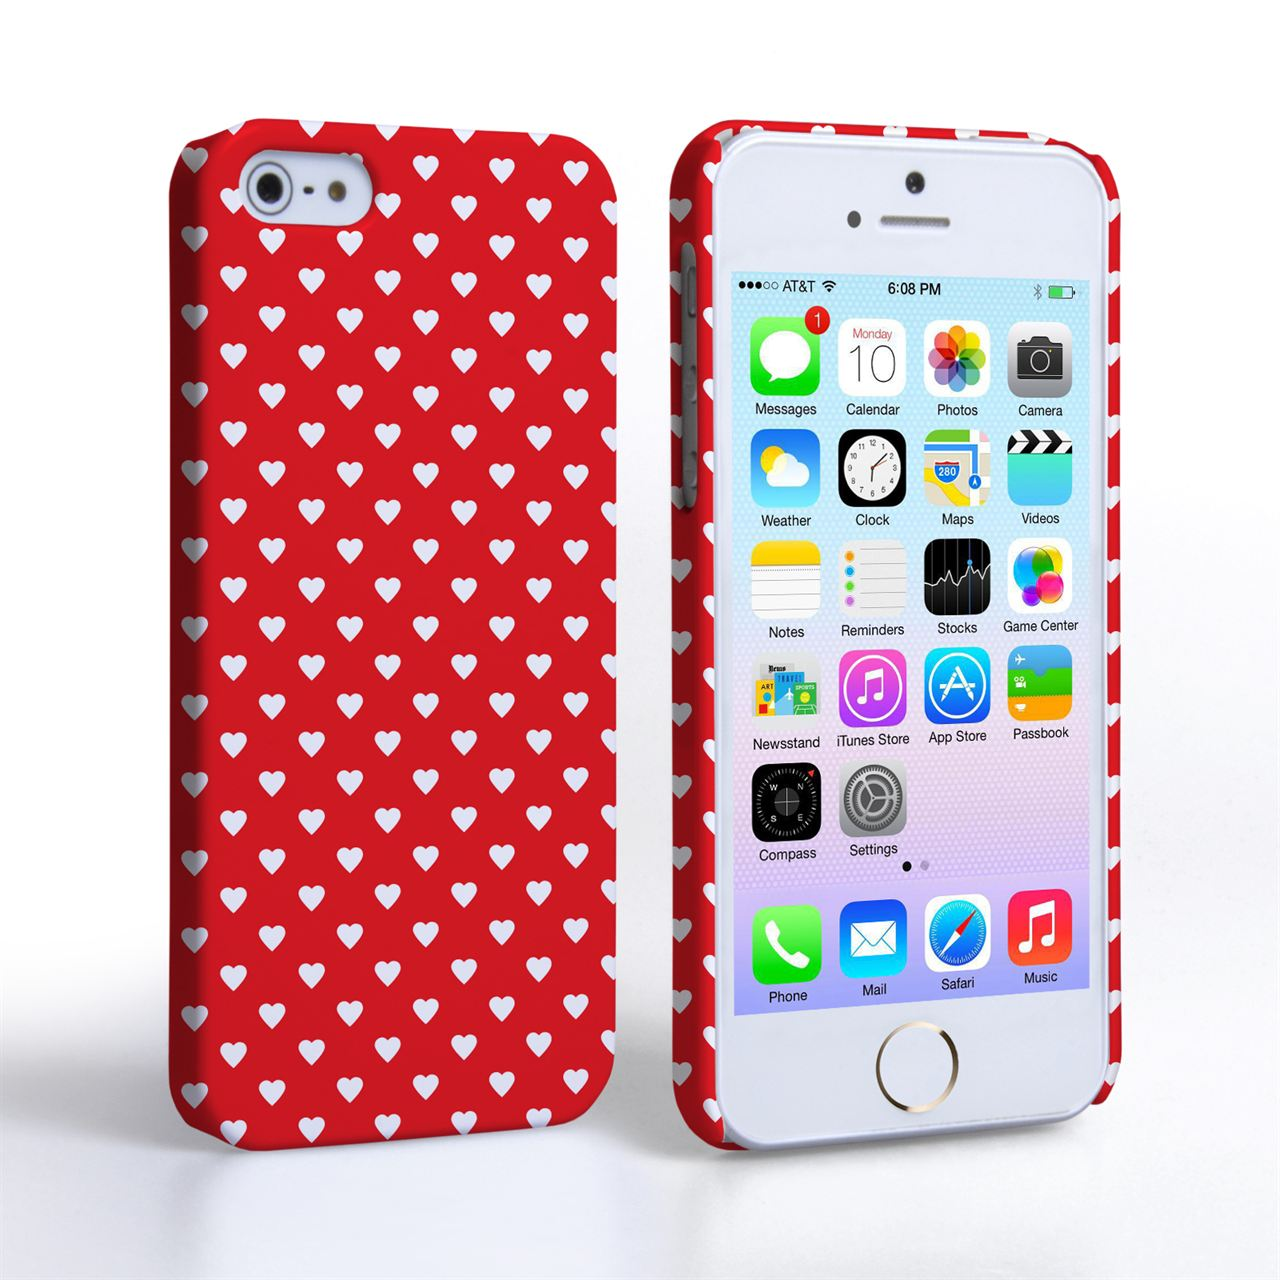 pretty iphone 5s cases caseflex iphone 5 5s hearts mobile 5835